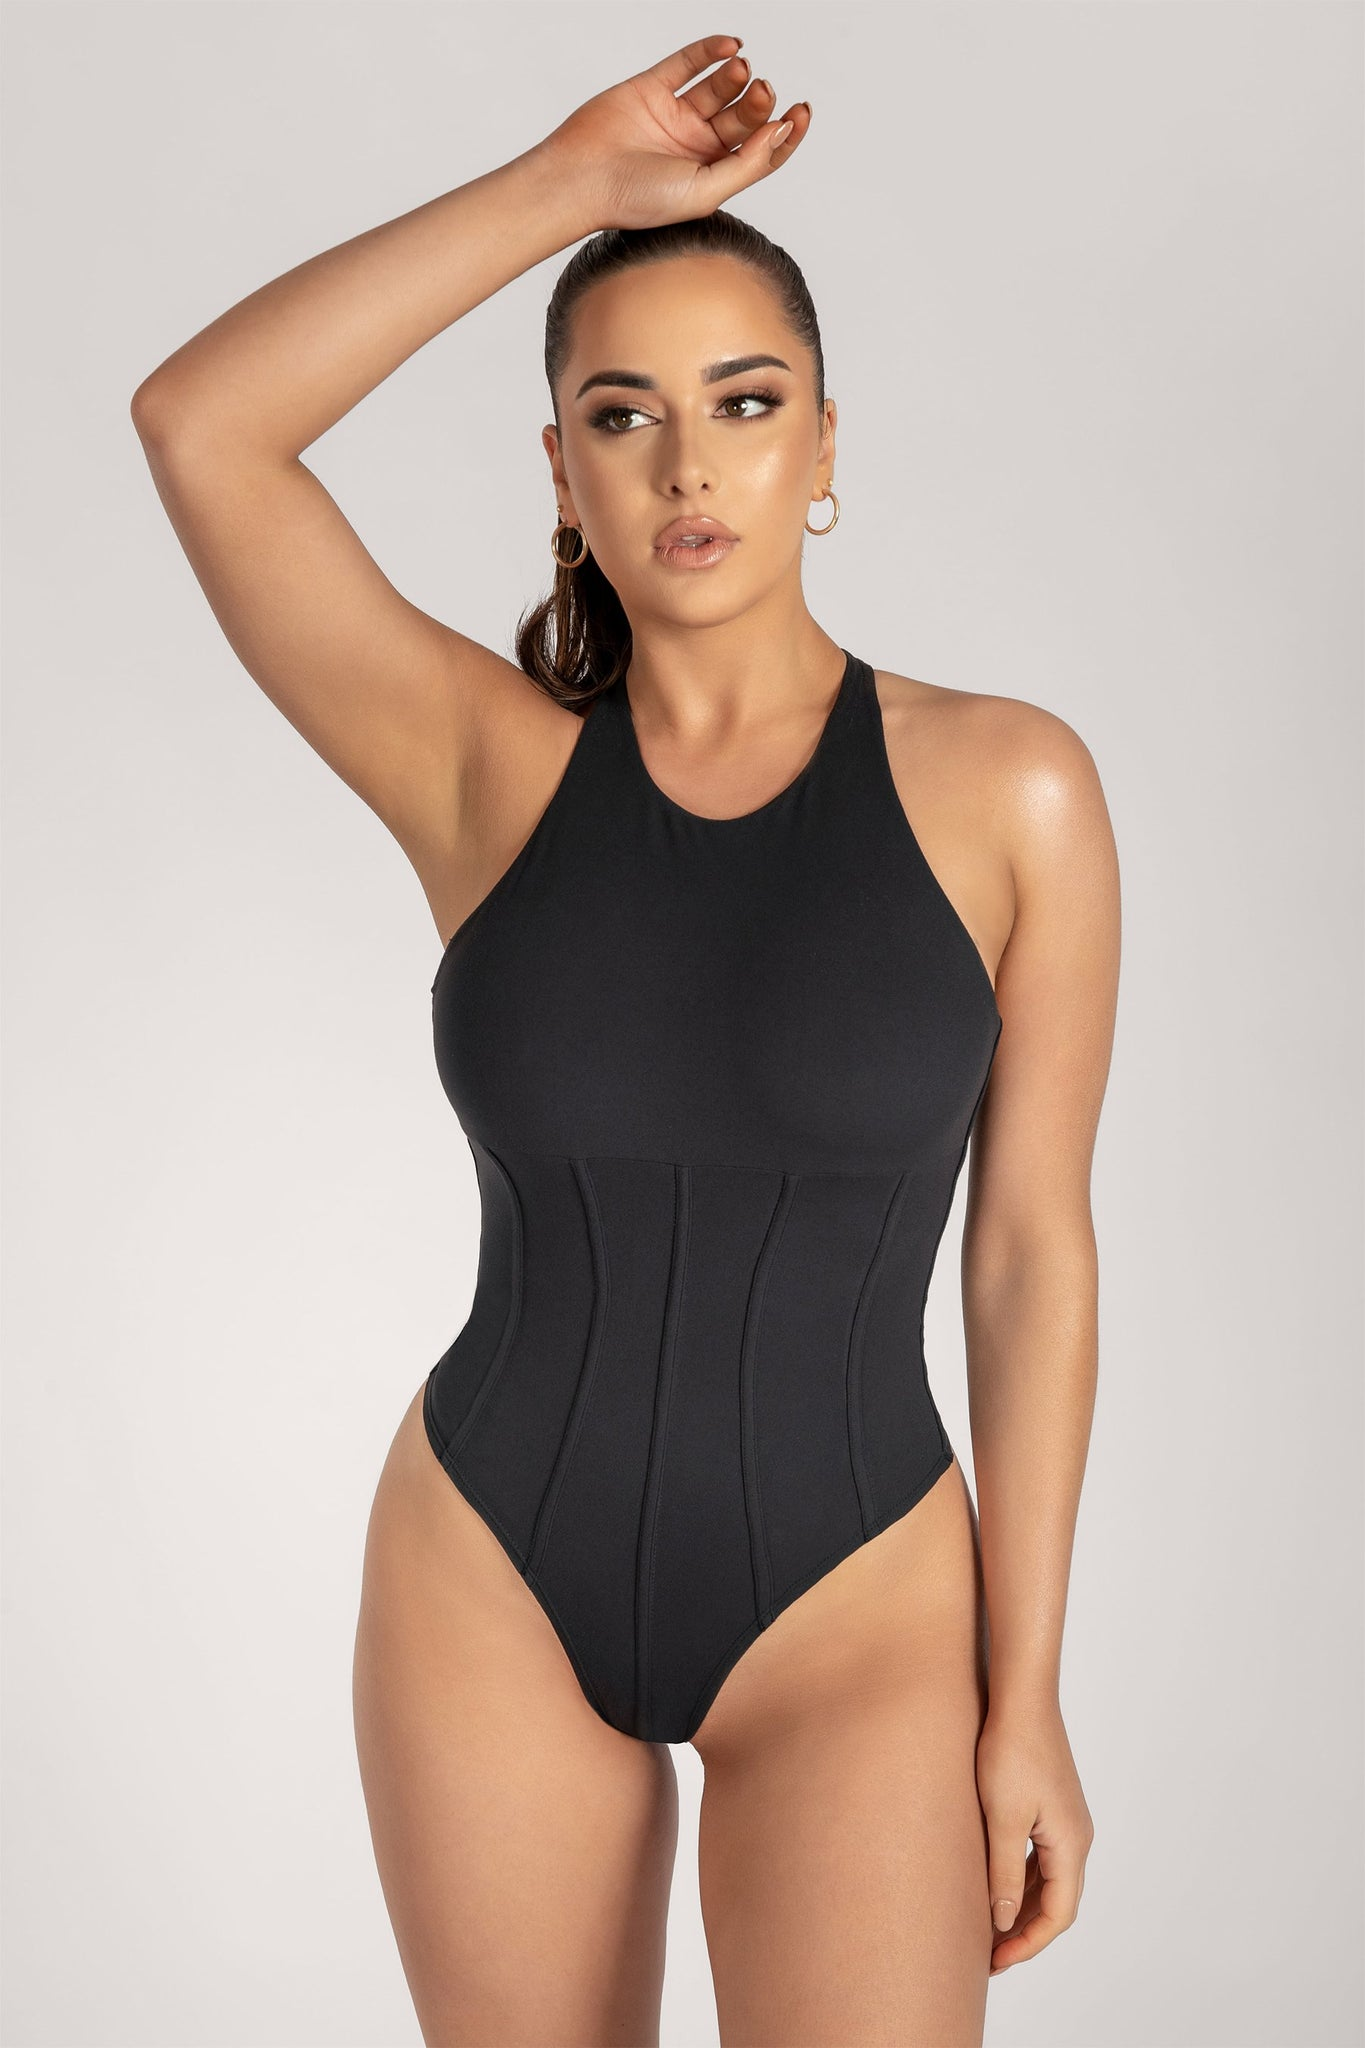 Hera Panelled Bodysuit - Black - MESHKI